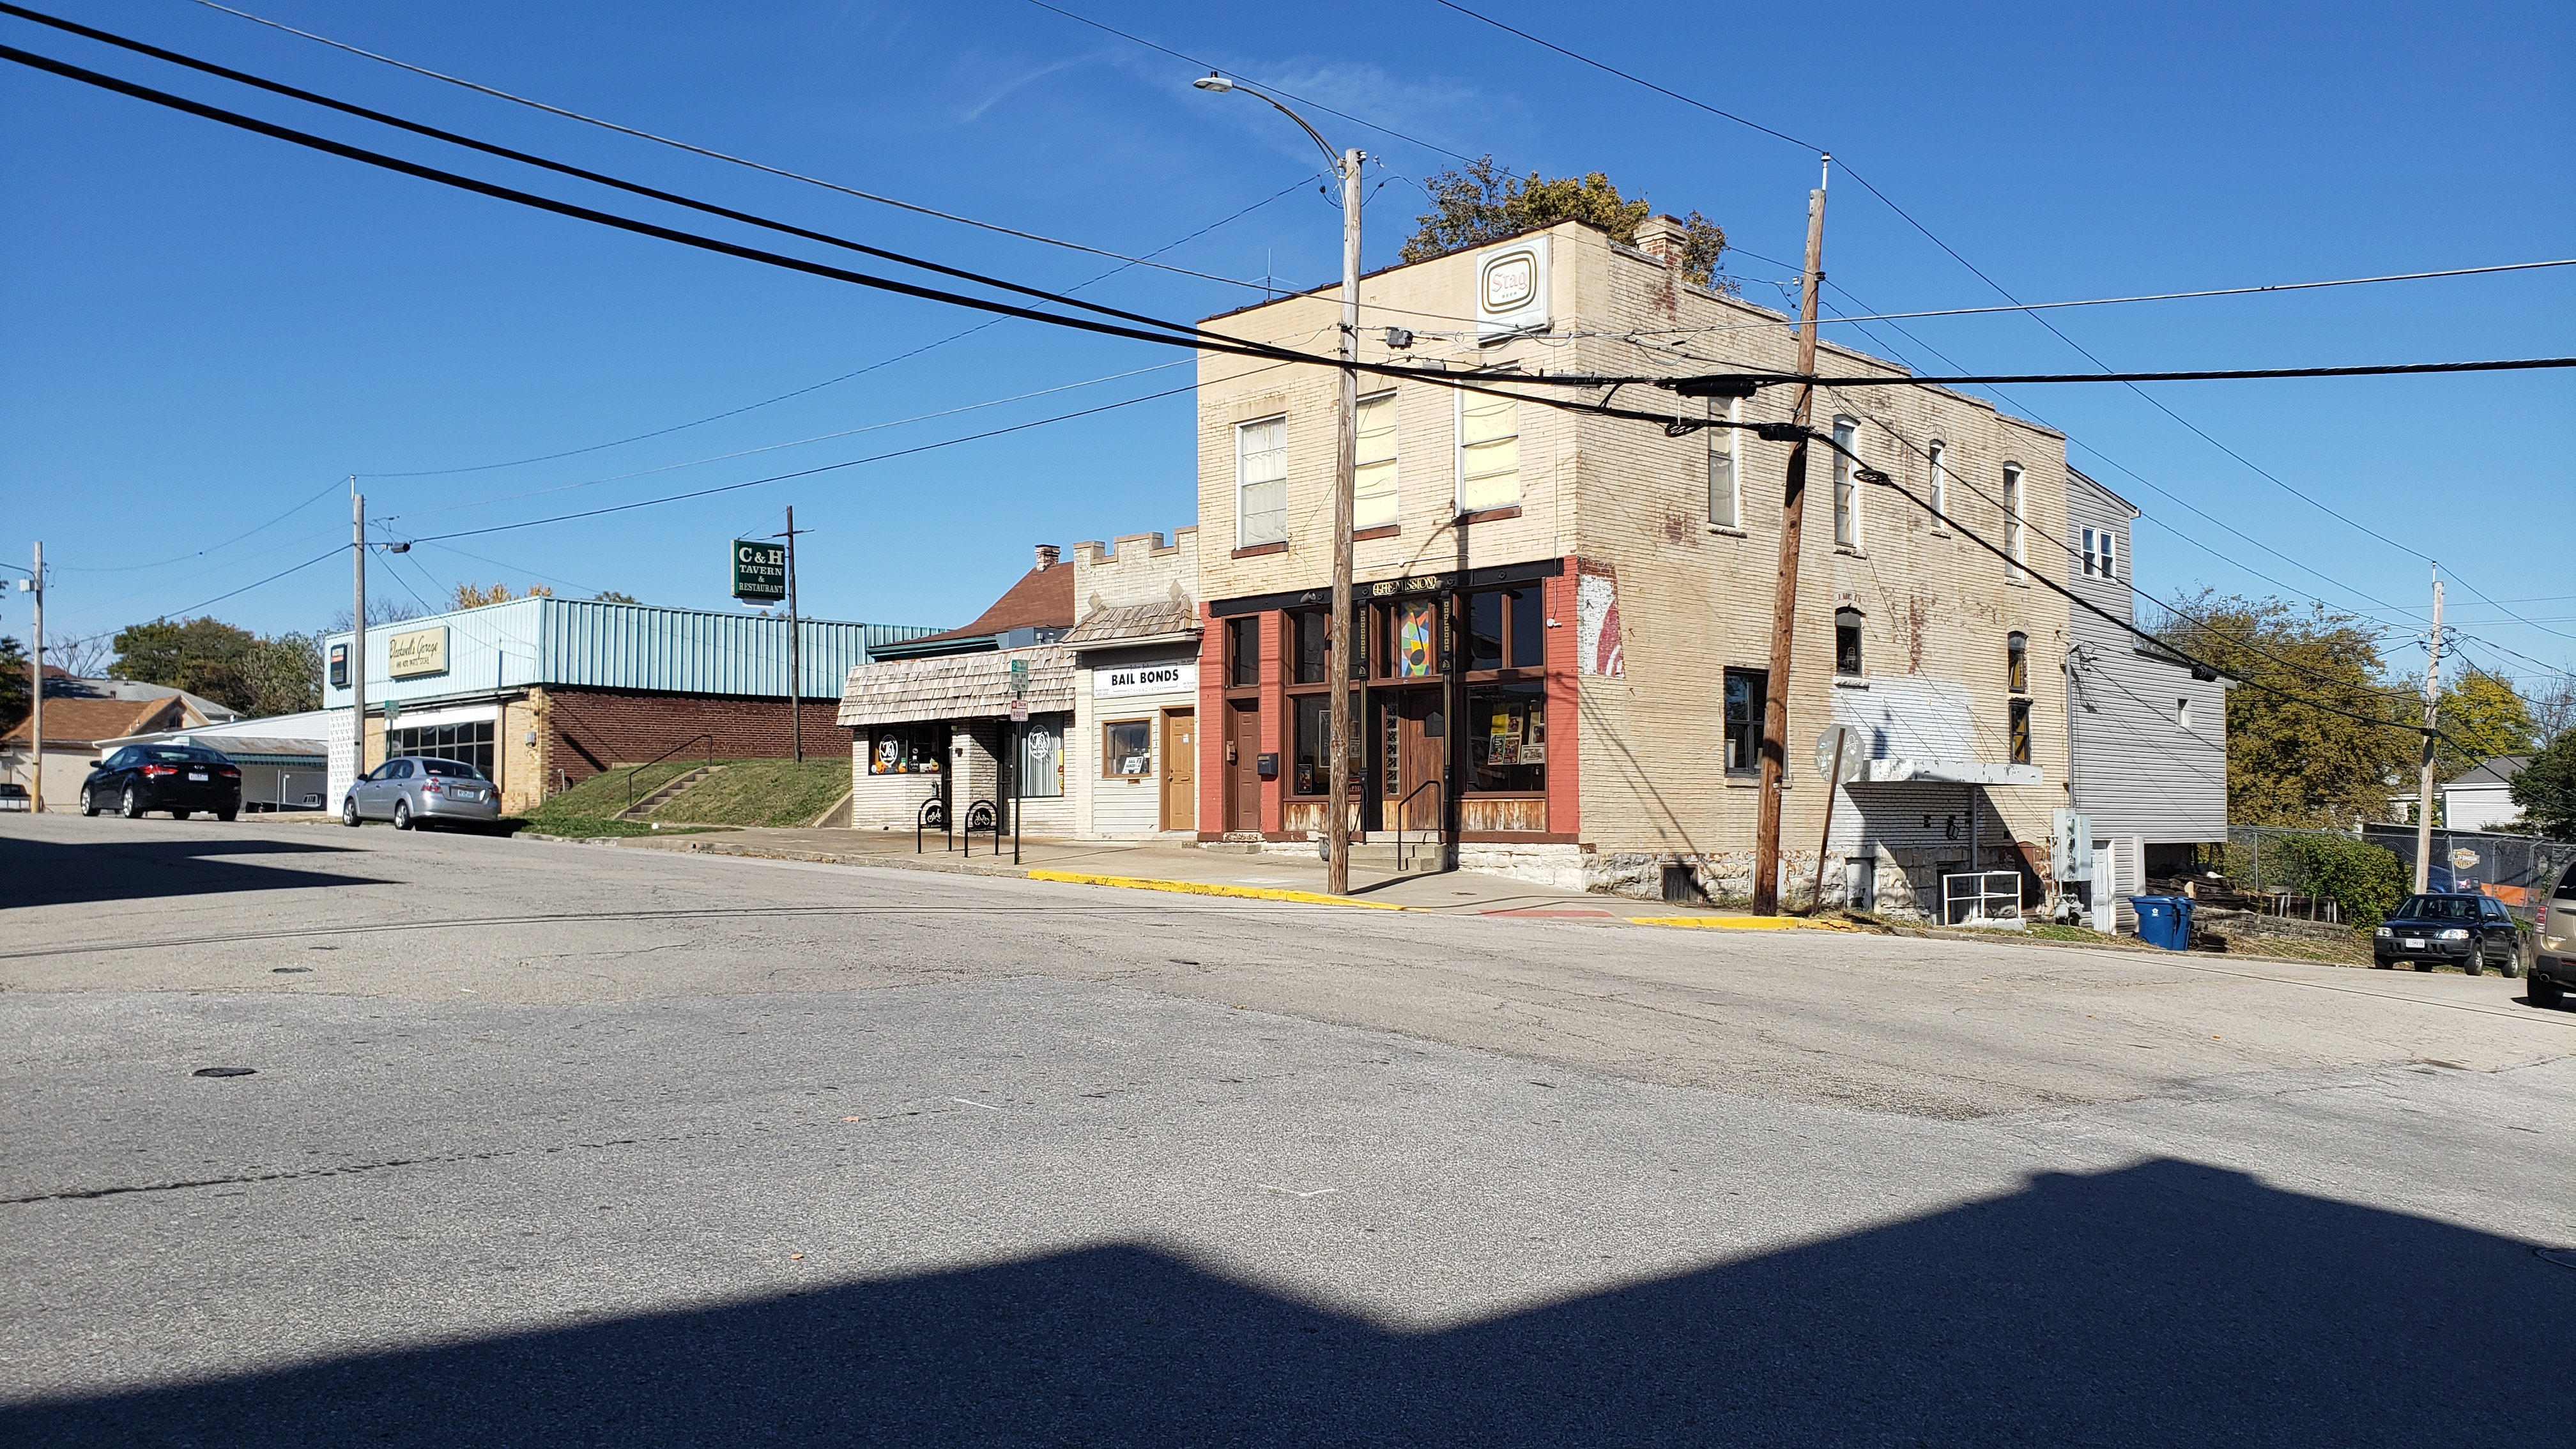 The Mission bar in Jefferson City